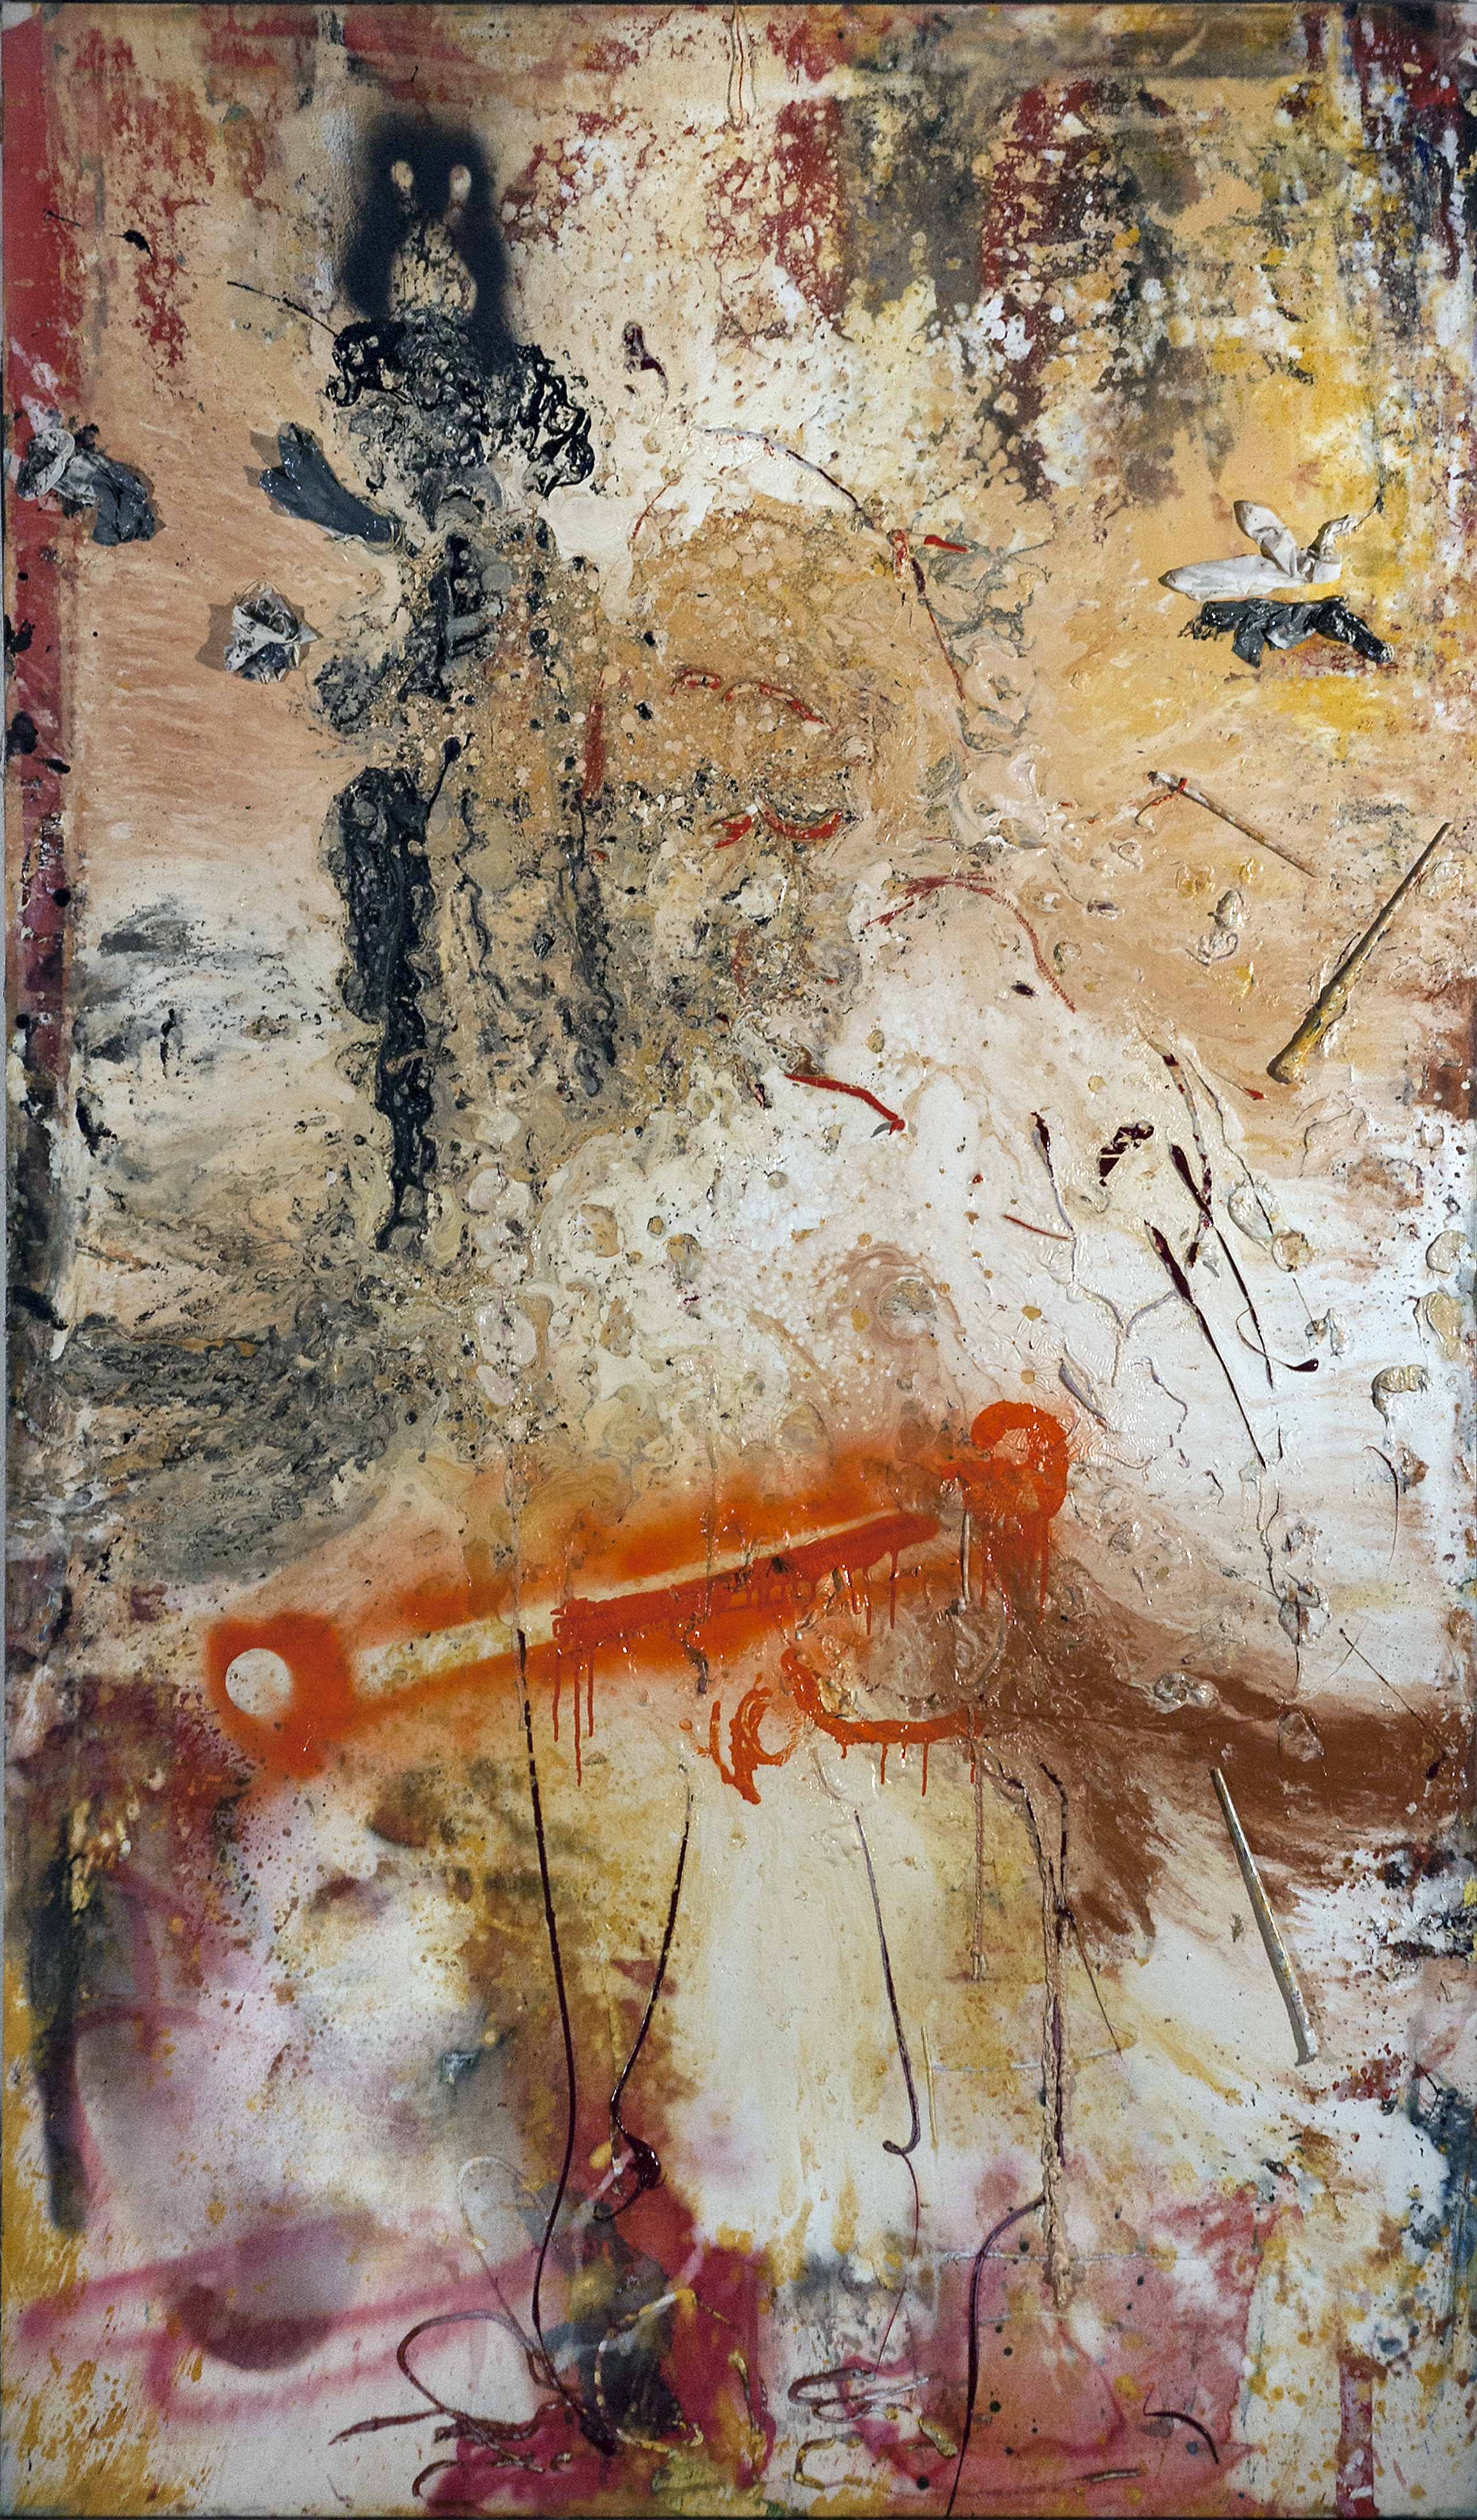 Thomas Lange, War apostel, 2014, mixed media on canvas, 250 x 150cm